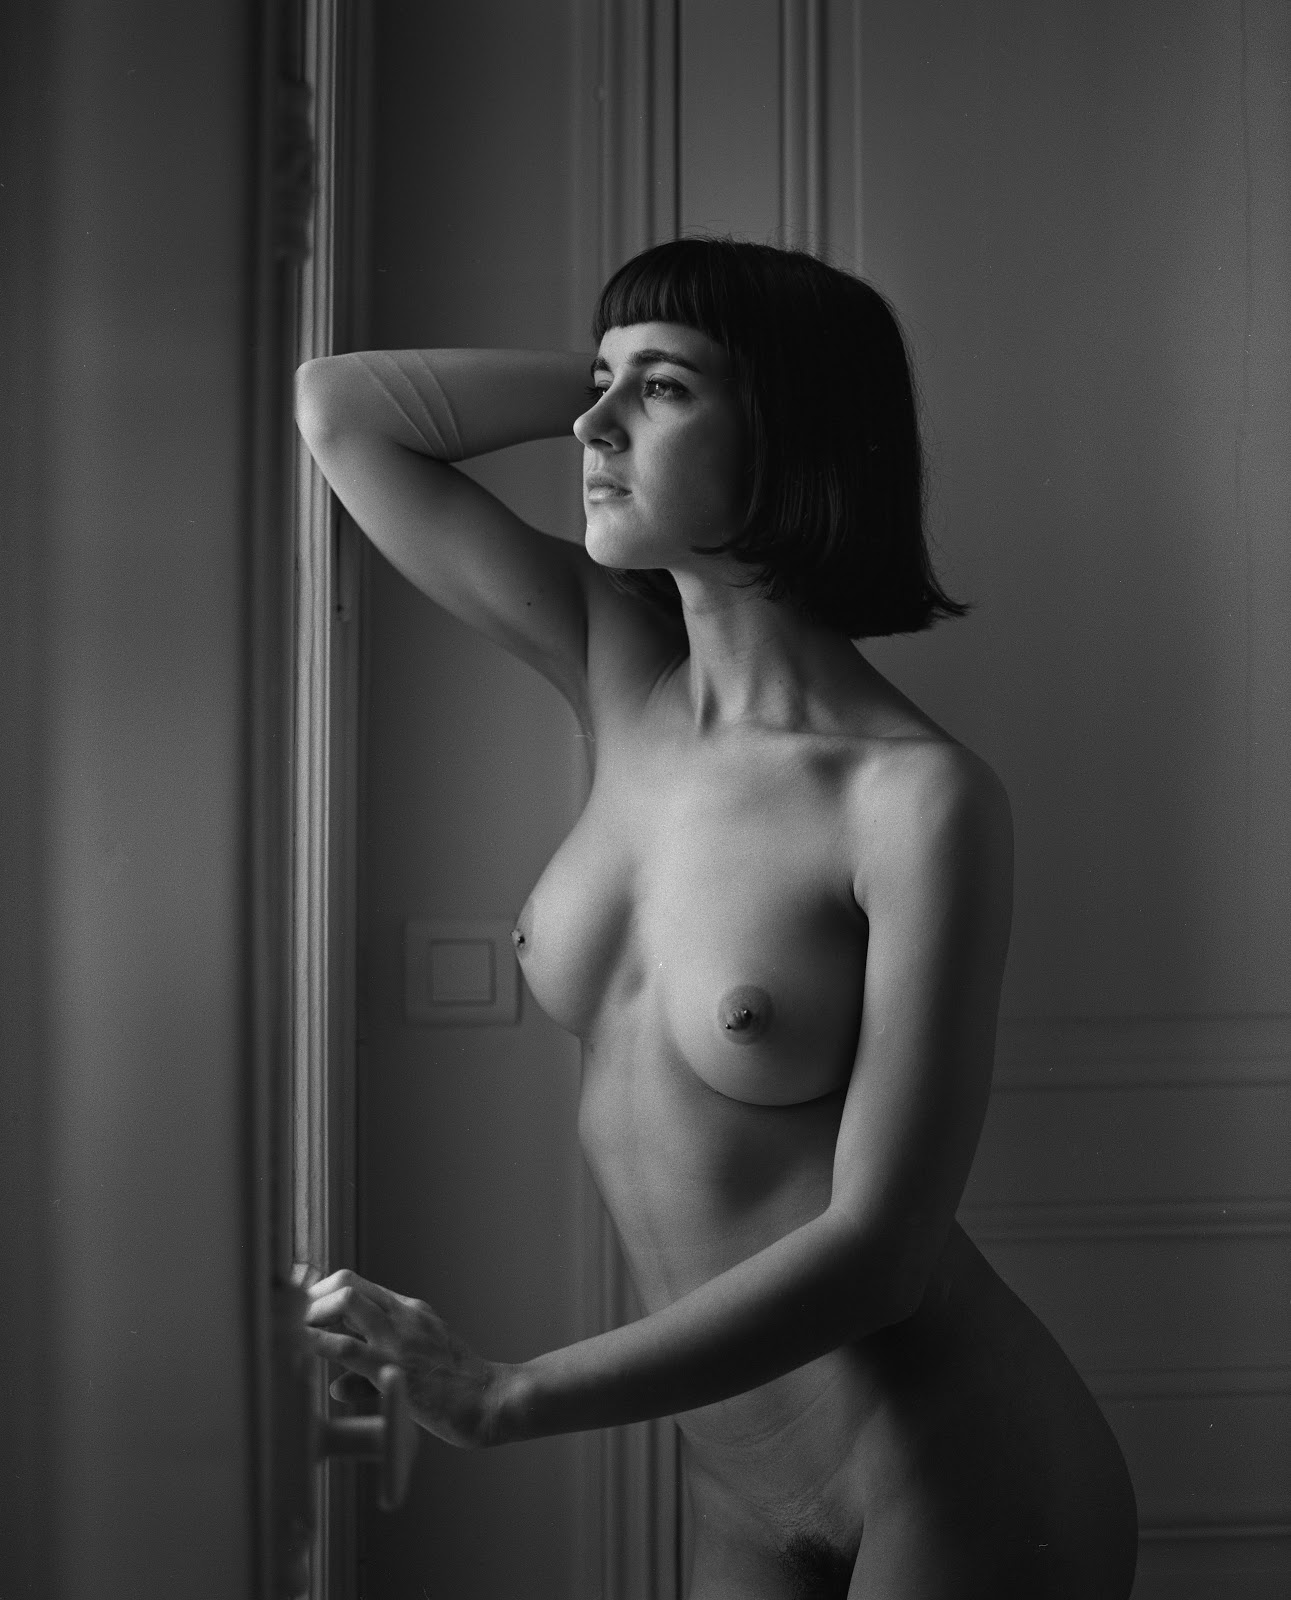 Nude photography random exposure